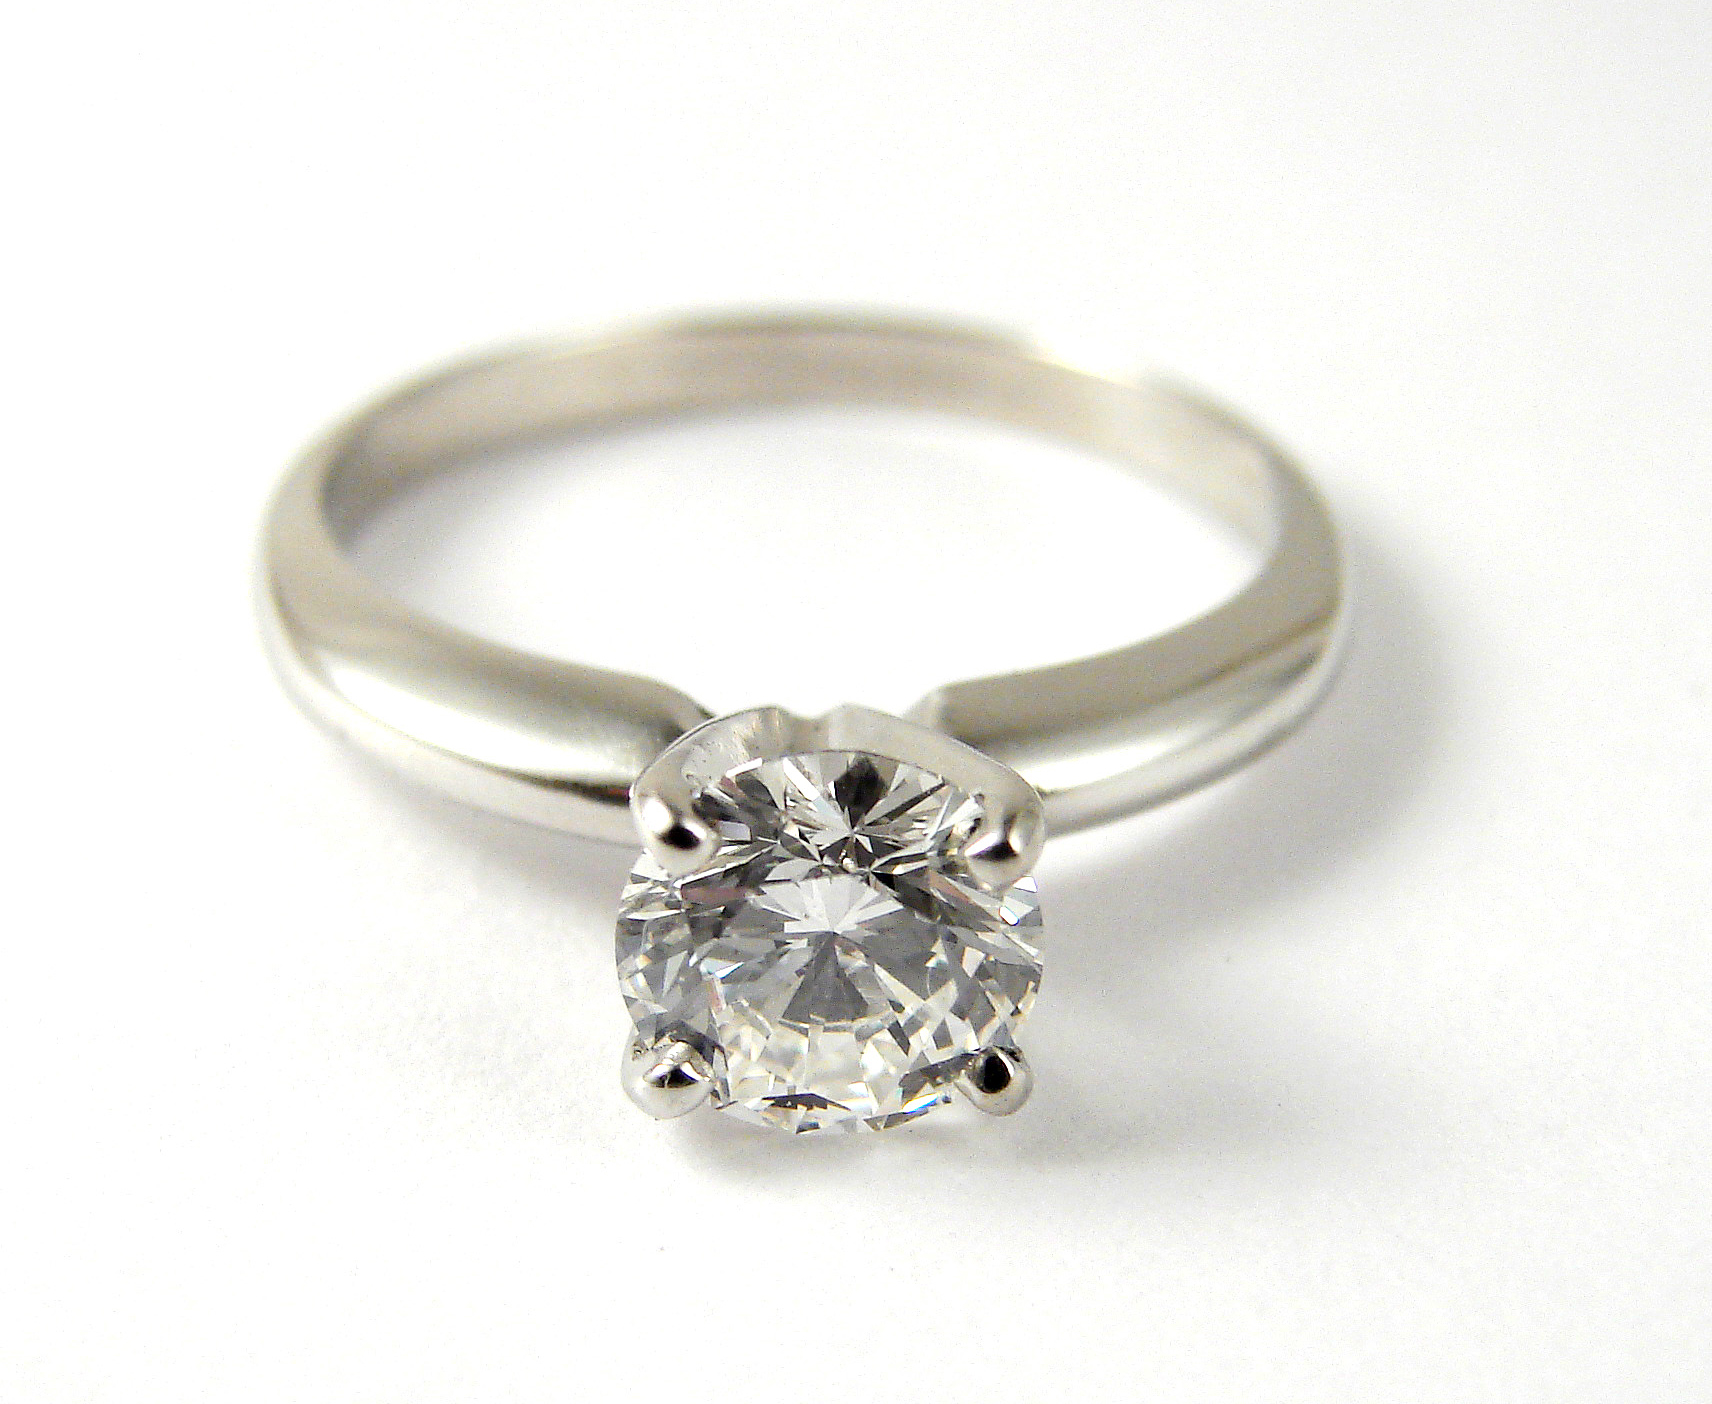 18kt white gold 0.80ct diamond solitaire ring with classic curved timeless band.  Starting at $4000 in this stone size and quality  Can be customizable with any stone, size, metal etc.